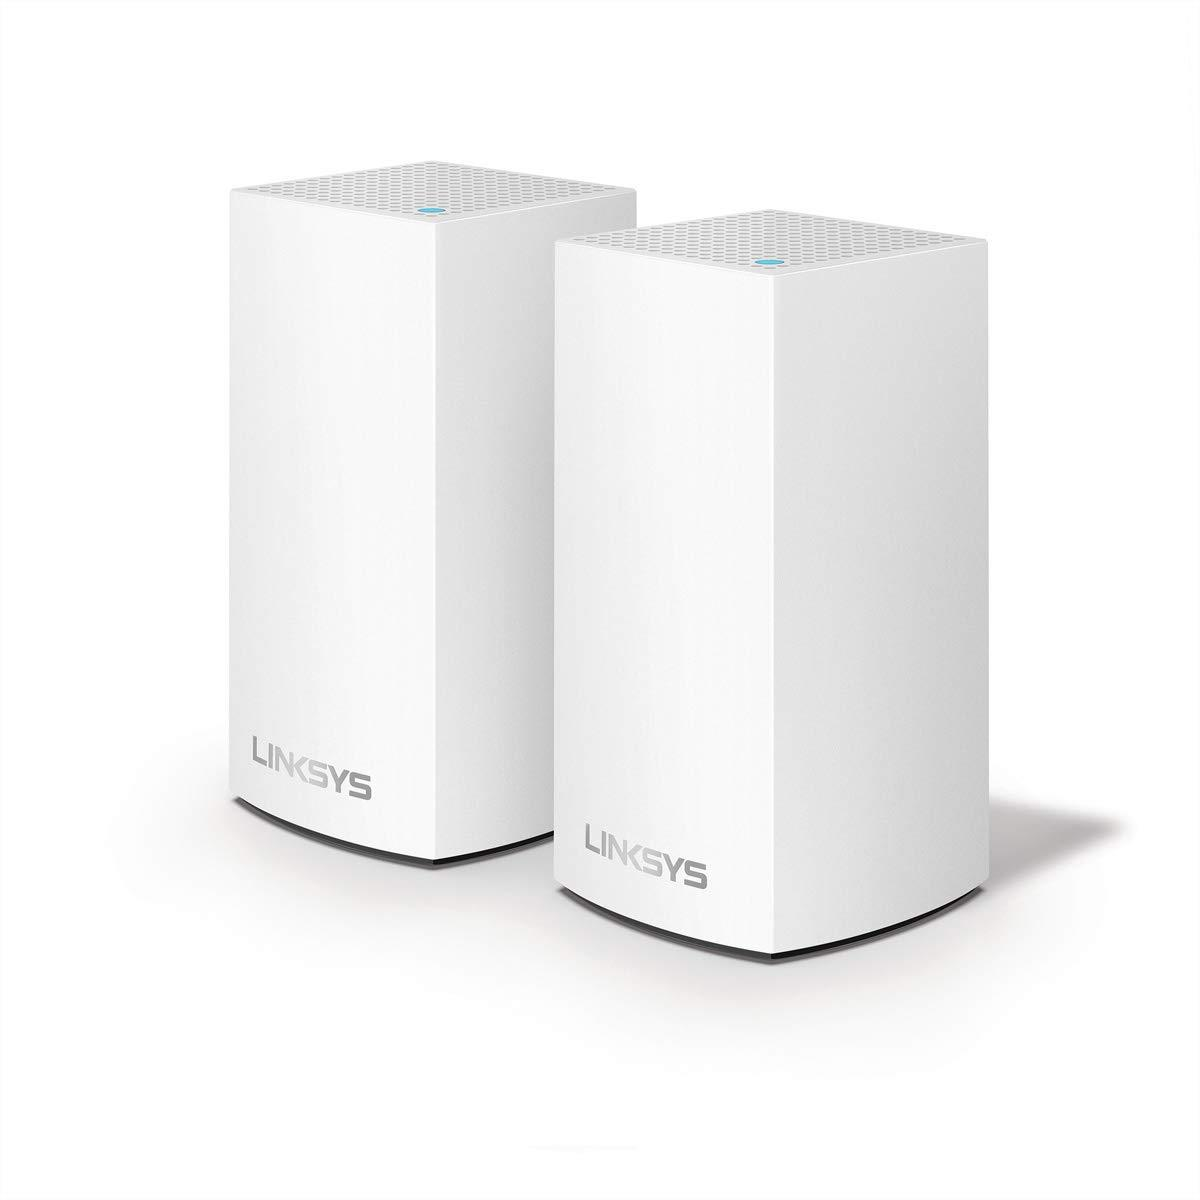 Linksys VLP0102 AC2400 Velop Whole Home Mesh WiFi System Dual-Band 2-Pack